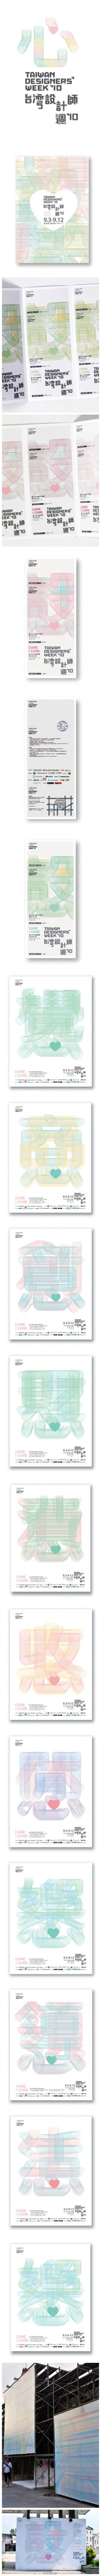 Taiwan Design Week '10 #poster #typography #colours